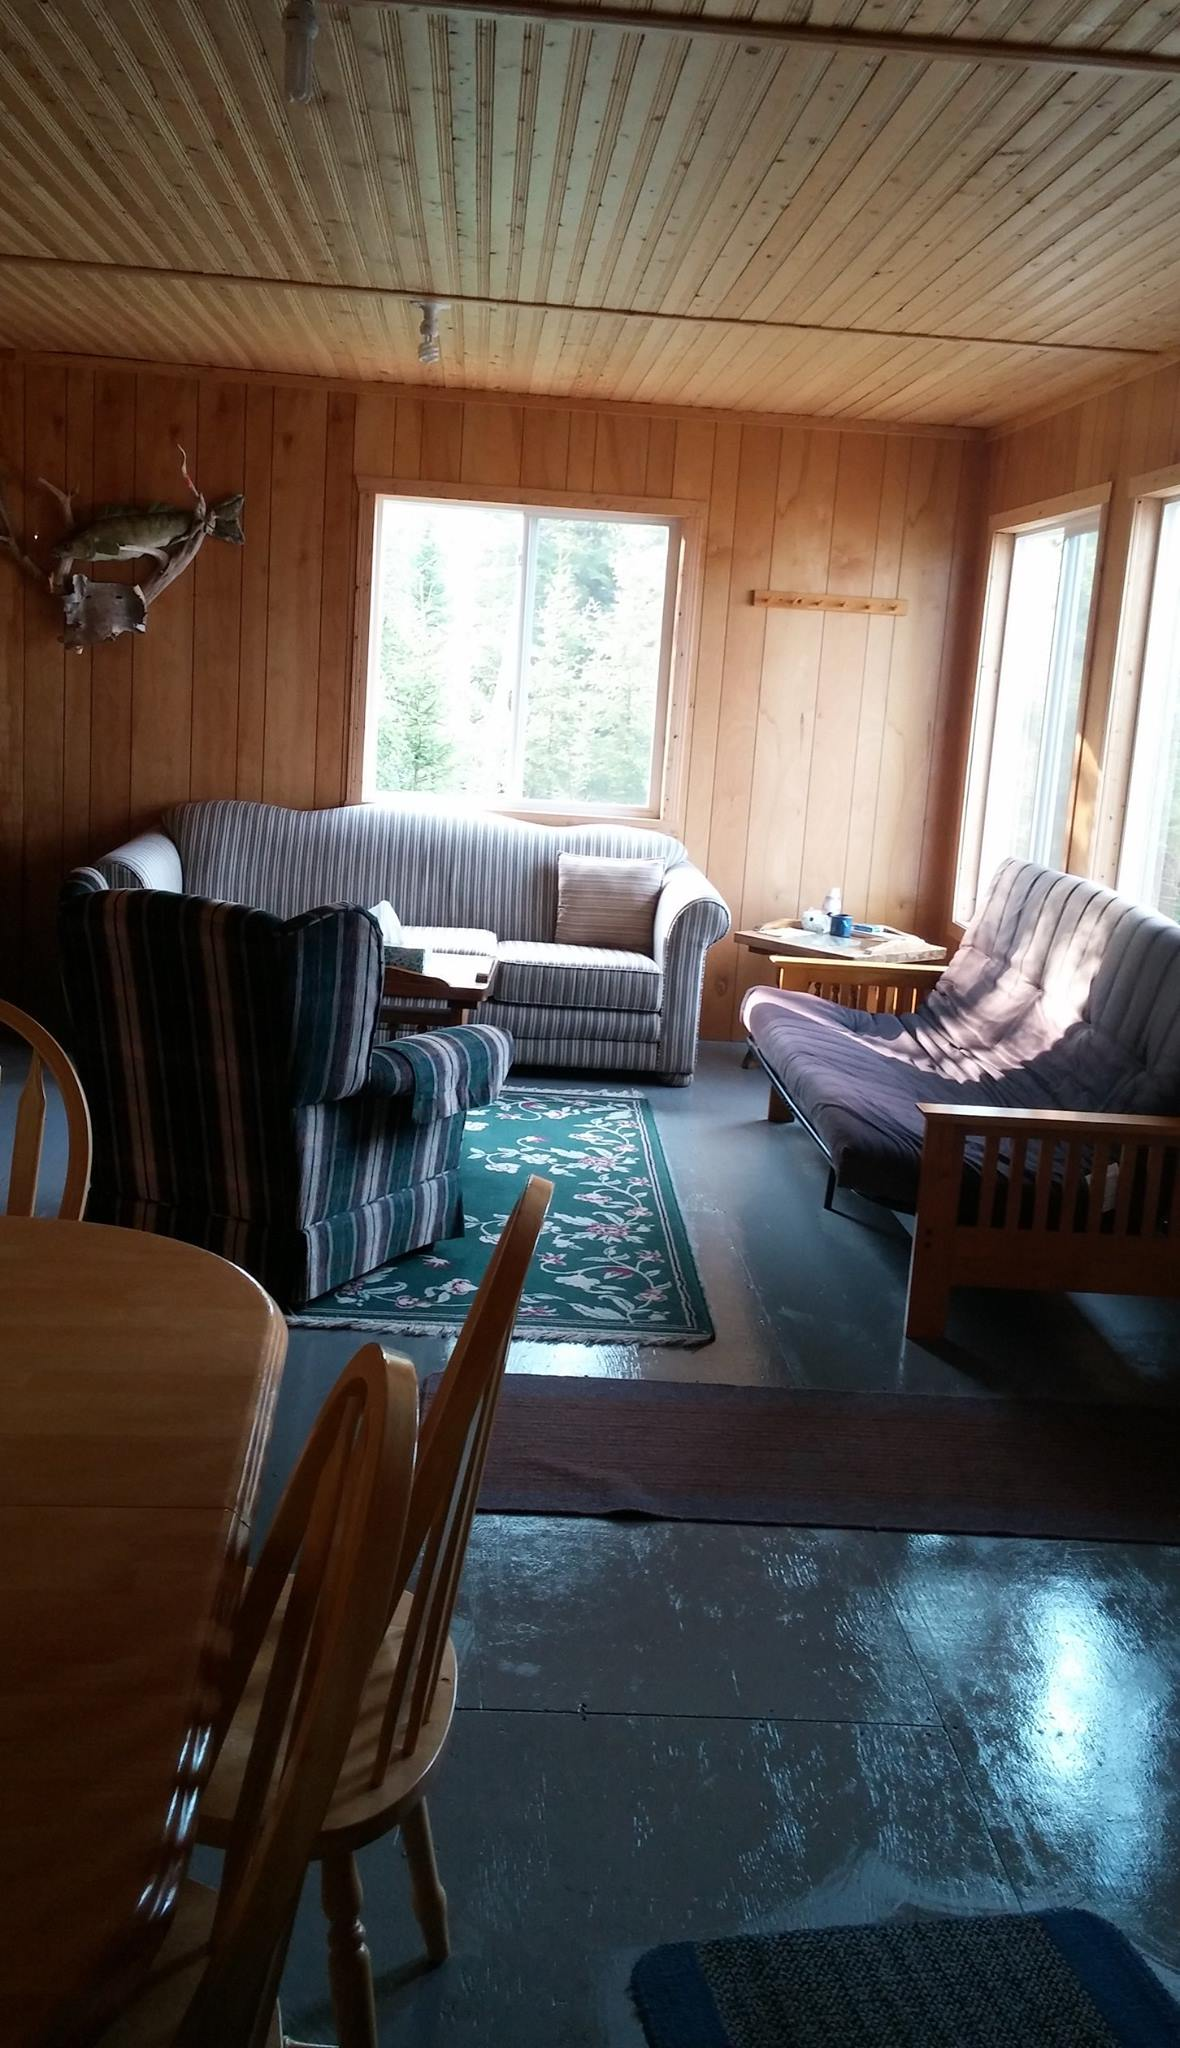 Clark's Resorts & Outposts Okanse Lake Outpost